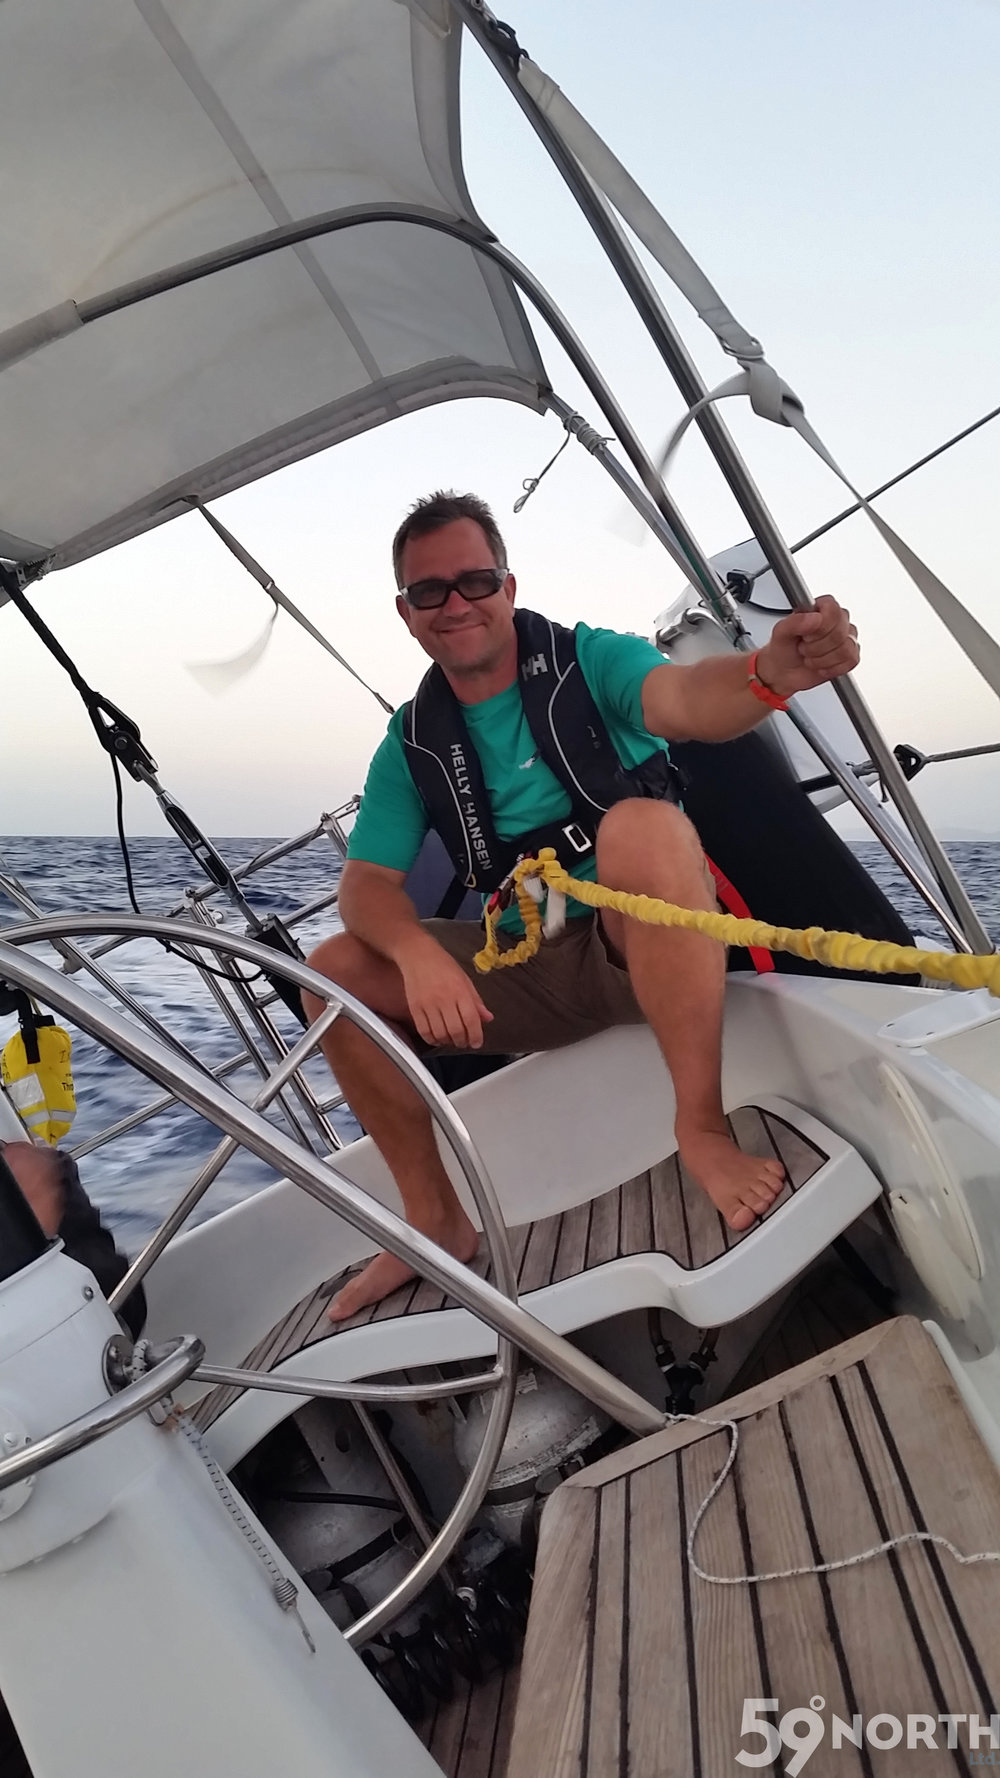 Greg enjoying the sail!